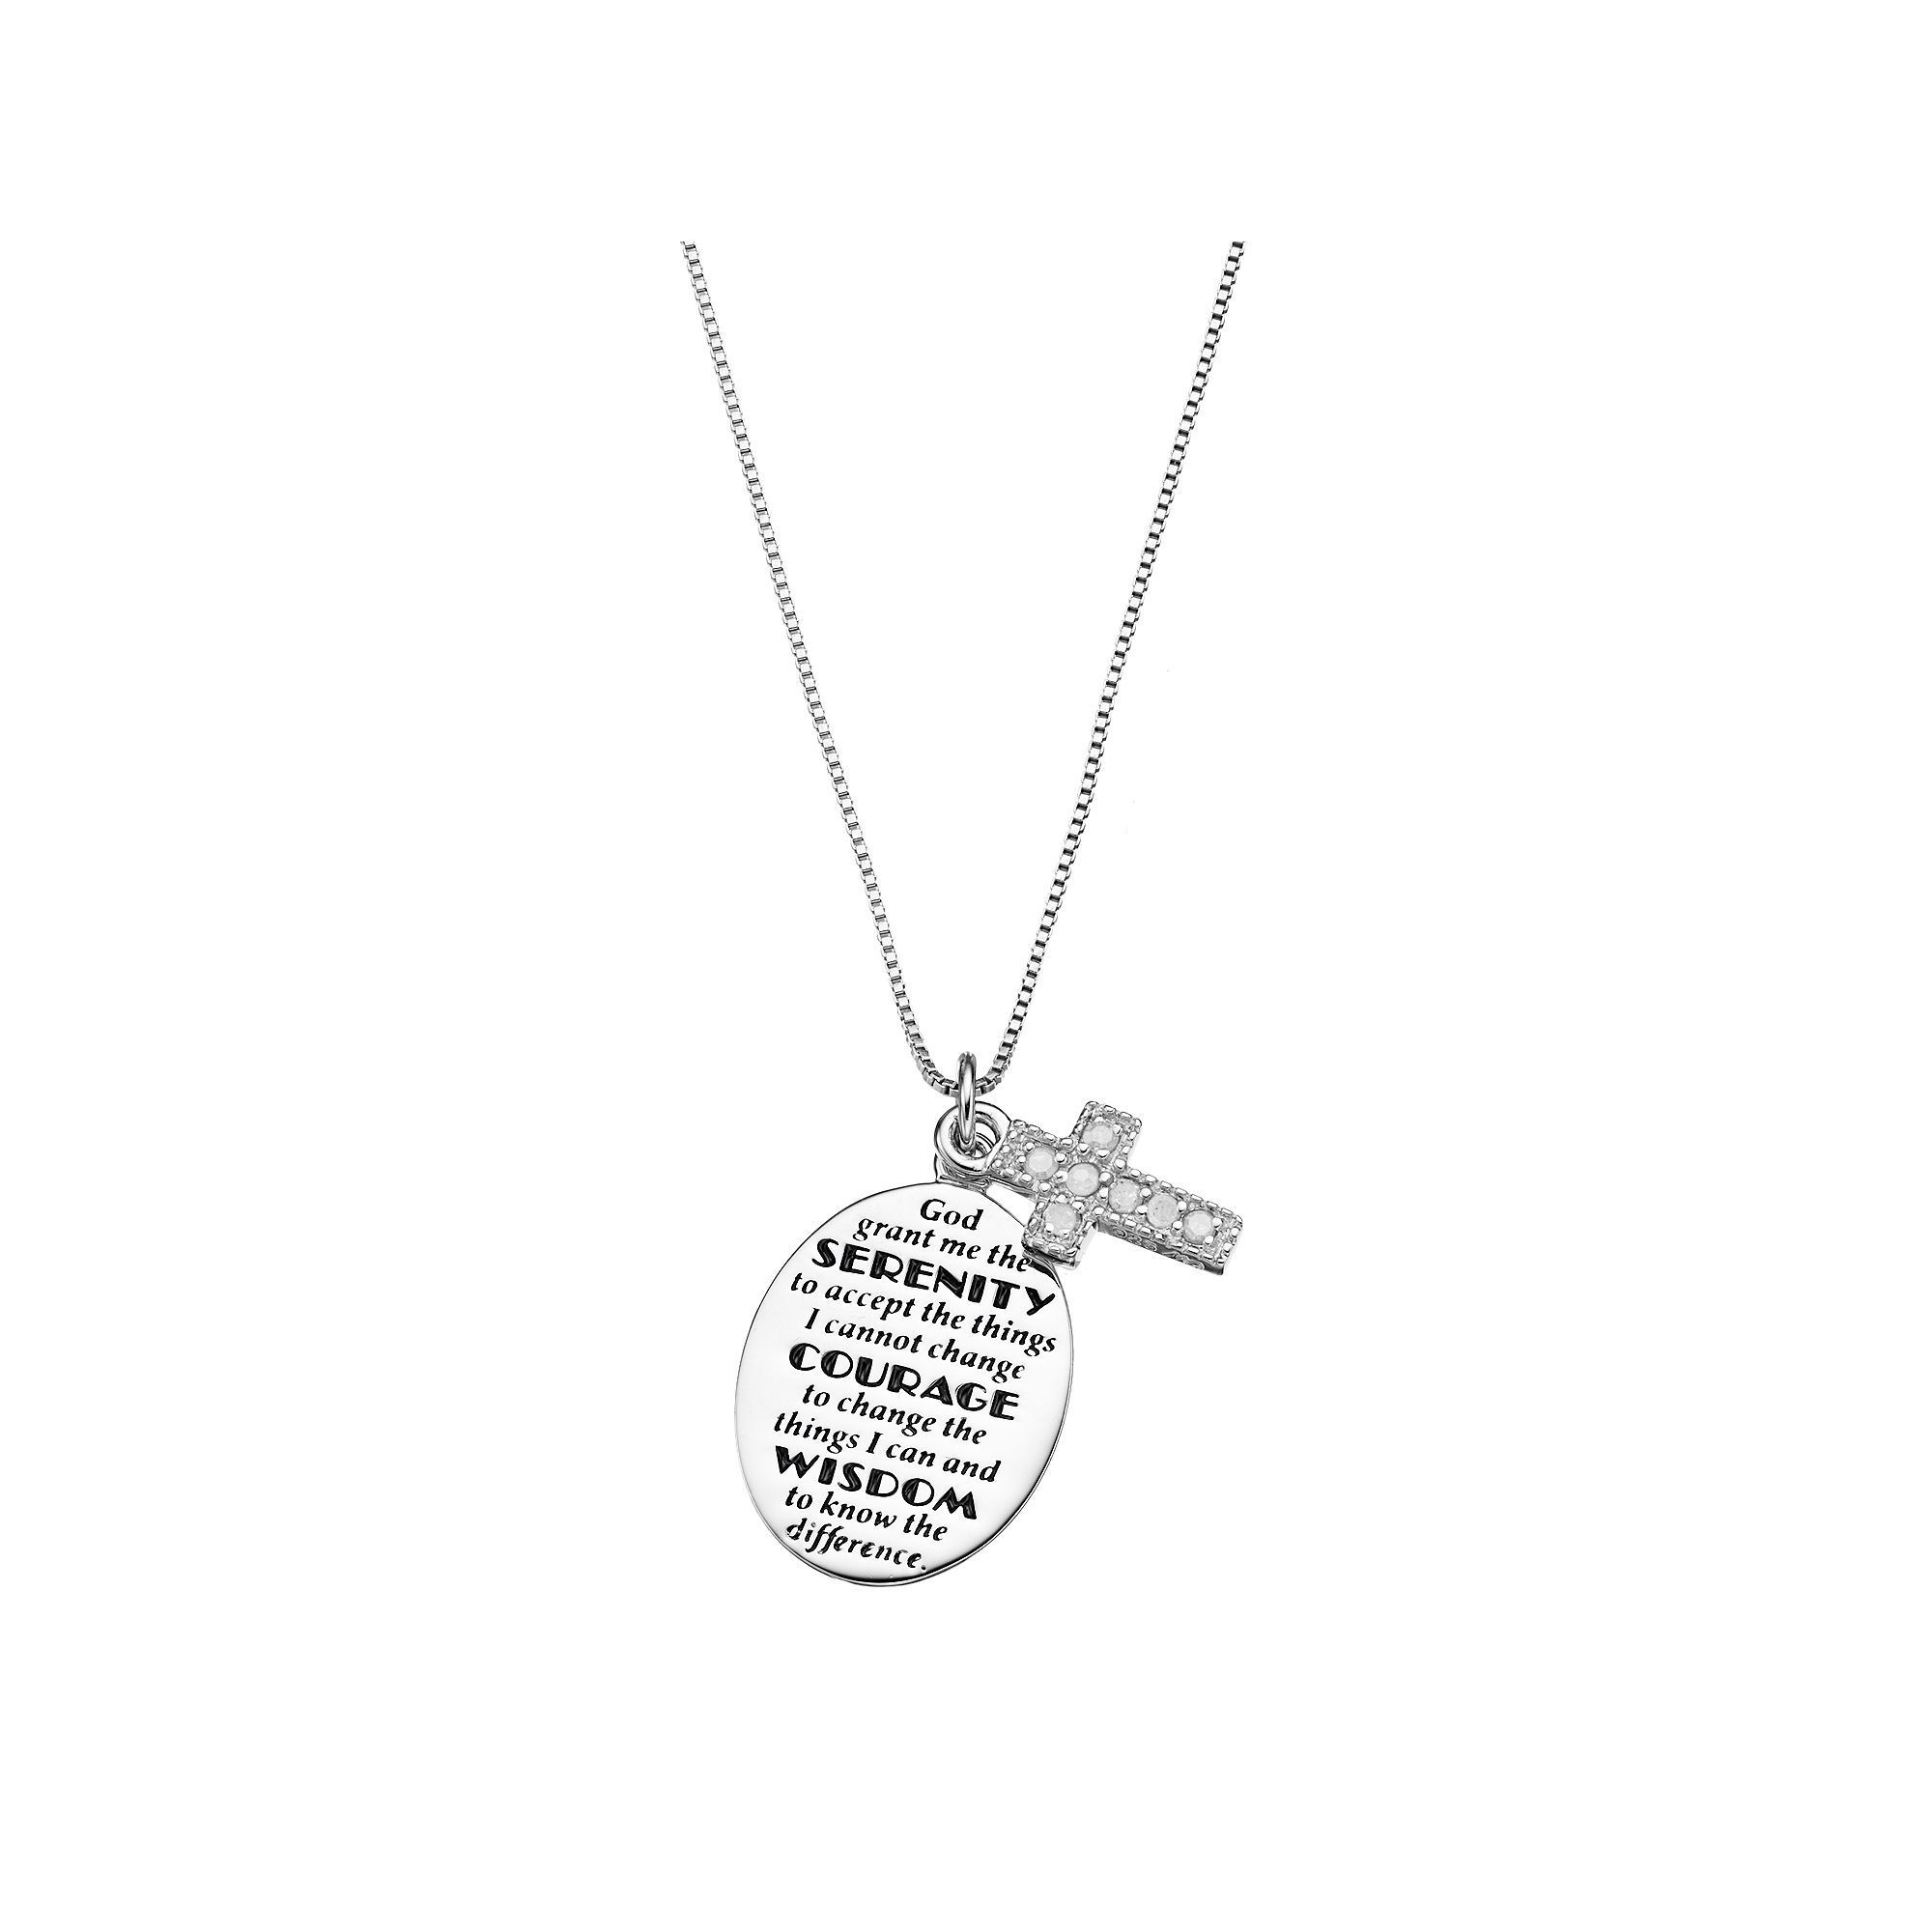 dp prayer com bible necklace jewelry christian praying amazon verse hands pendant with free stainless serenity coin chain medal steel